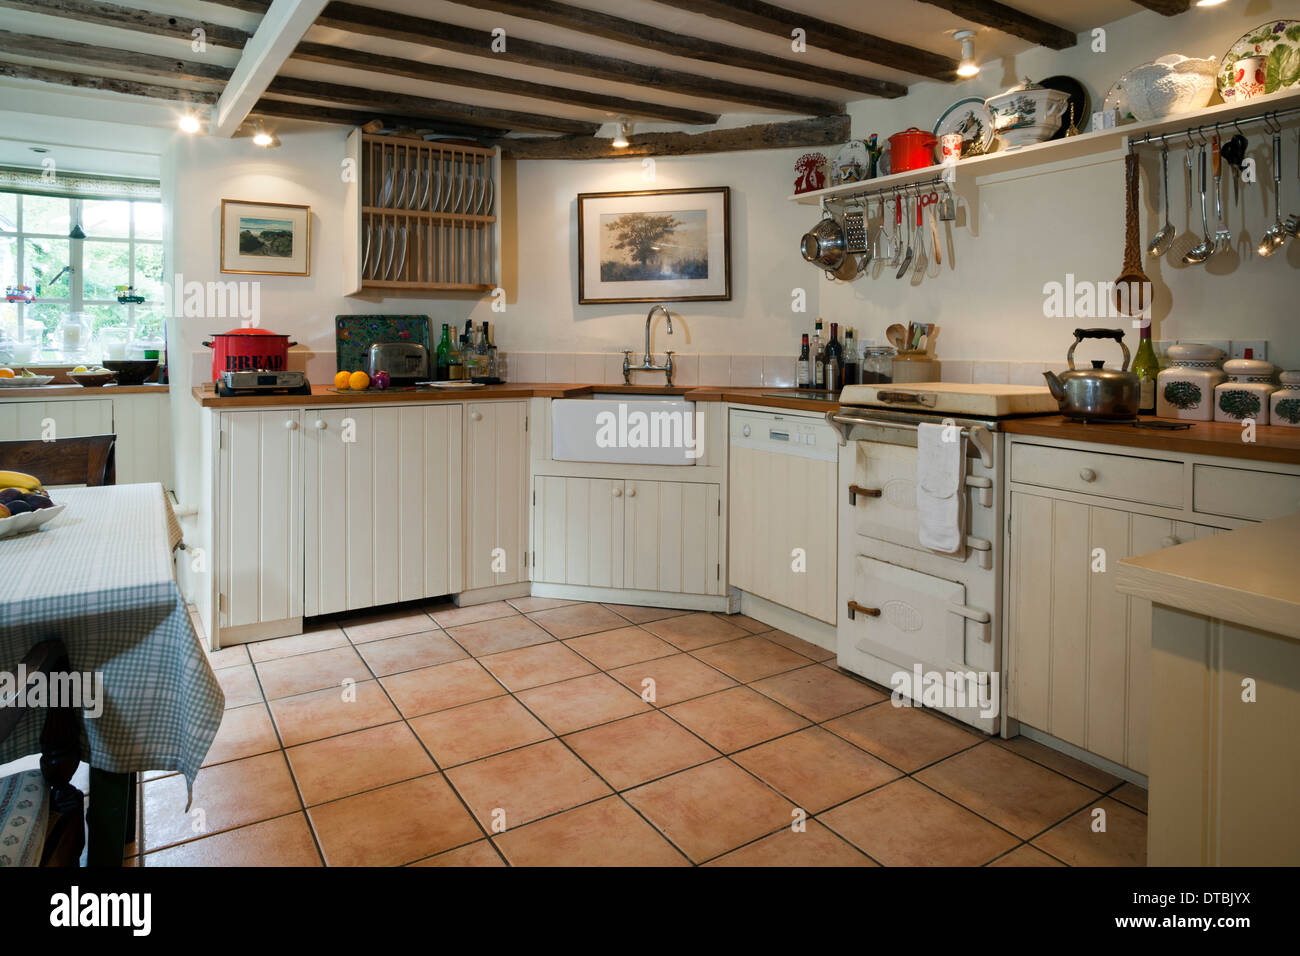 Fitted Kitchen With An Unusual Small Range Cooker.   Stock Image